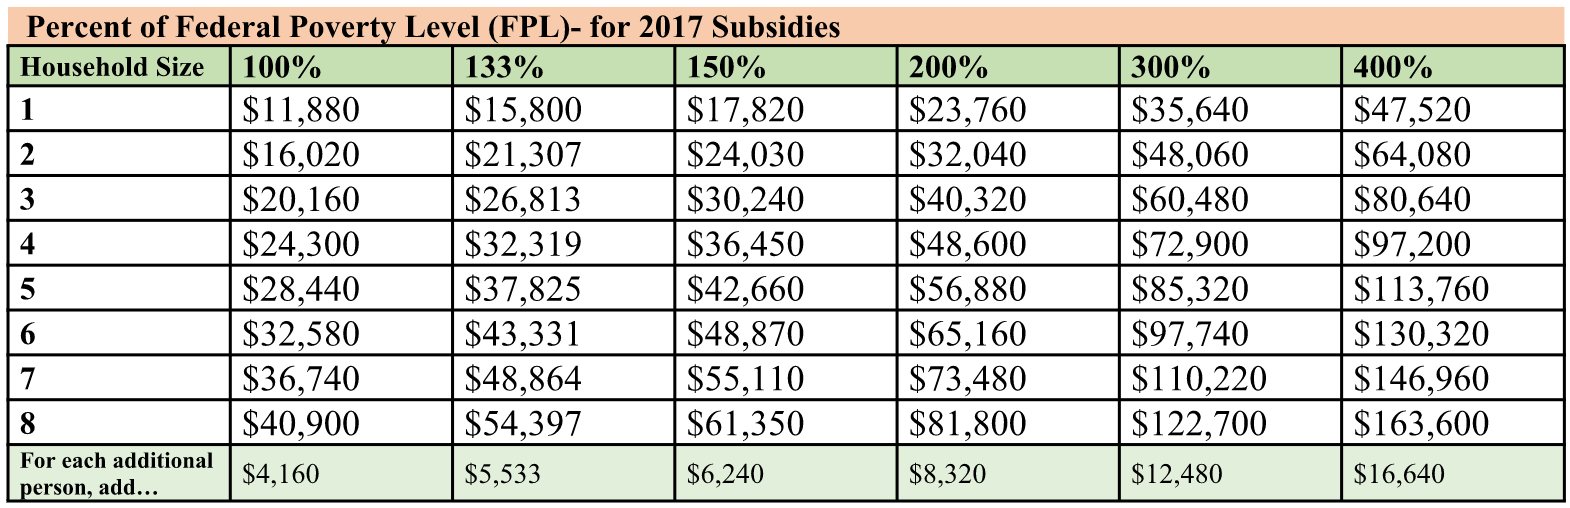 what poverty levels get tax credits for health insurance in 2018